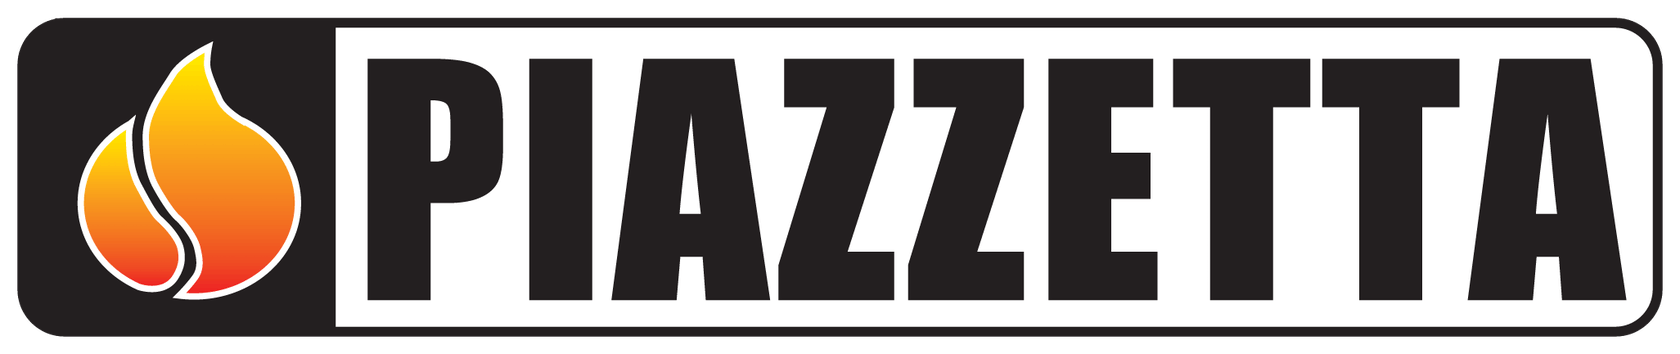 Image result for piazzetta logo